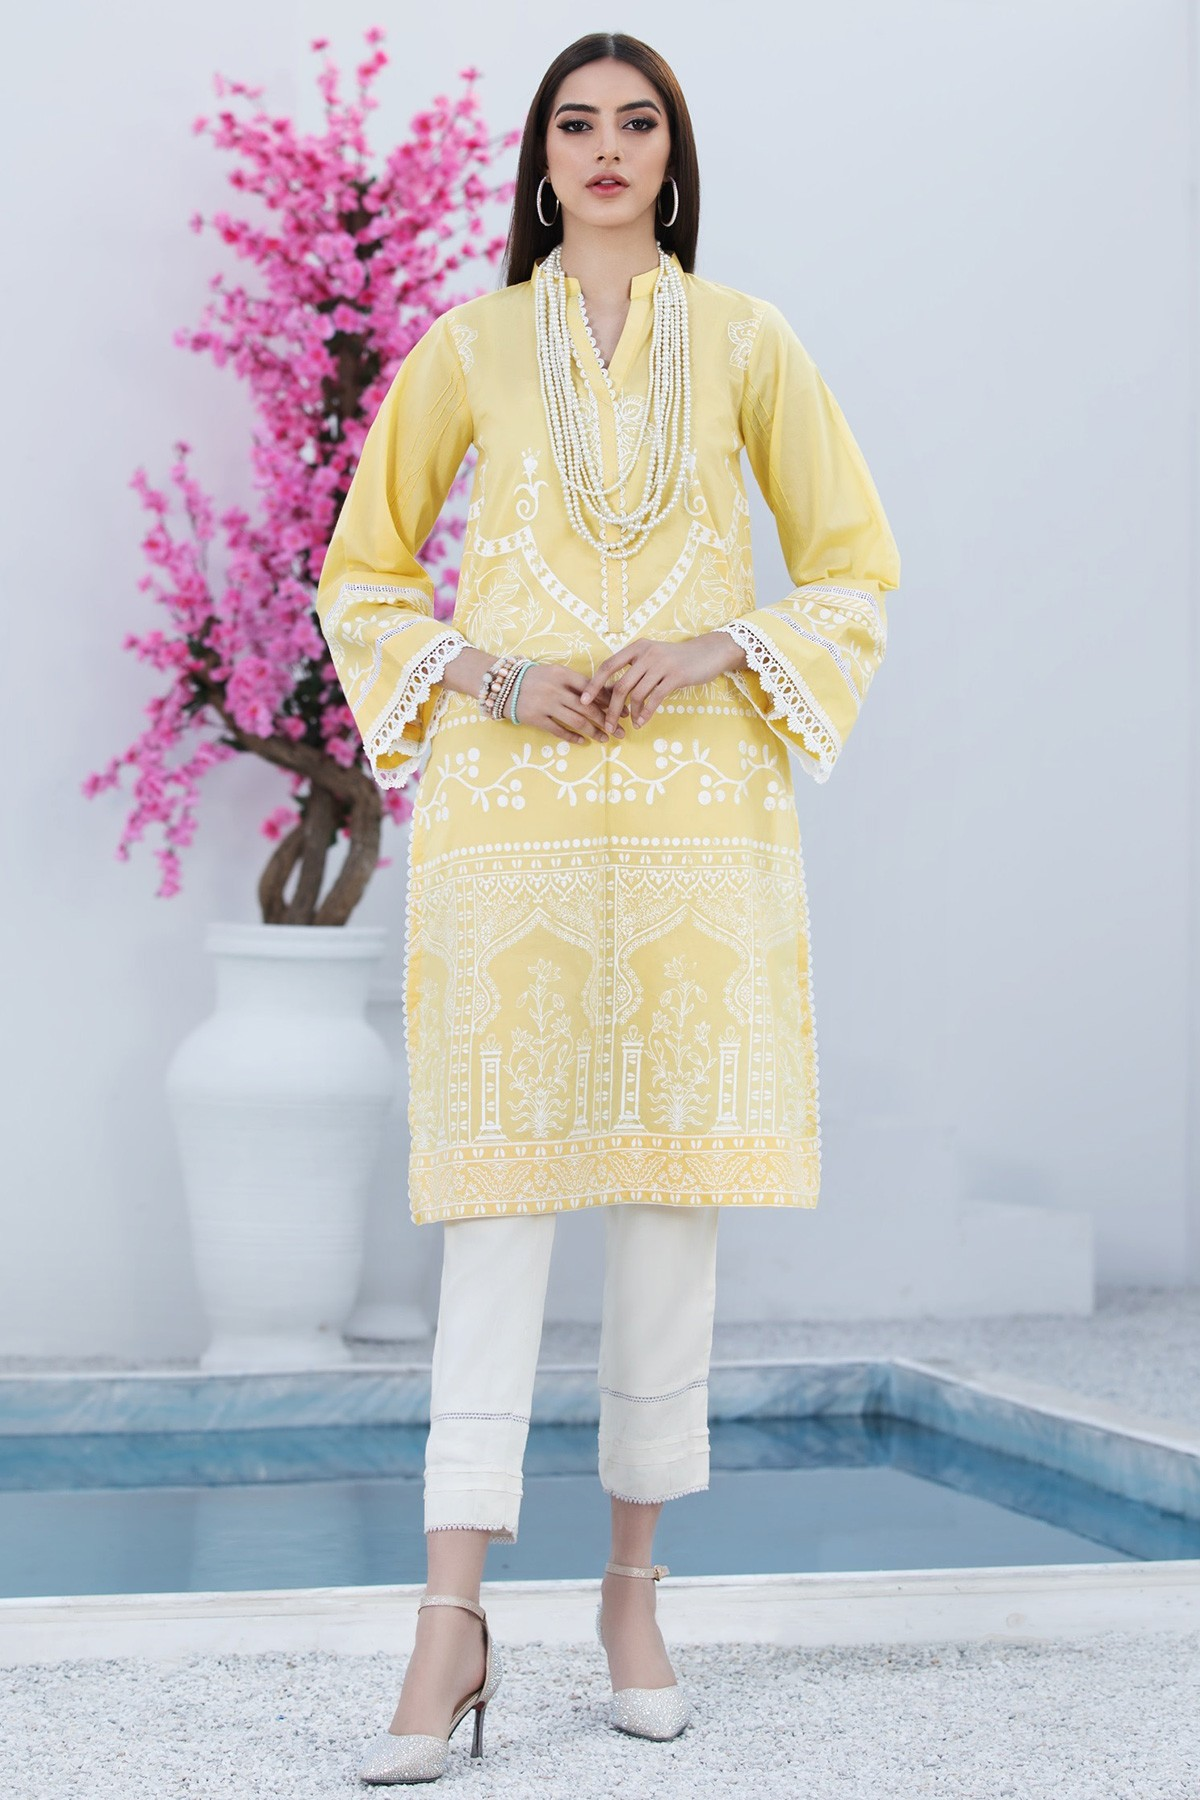 Pastel yellow shirt by origins summer collection